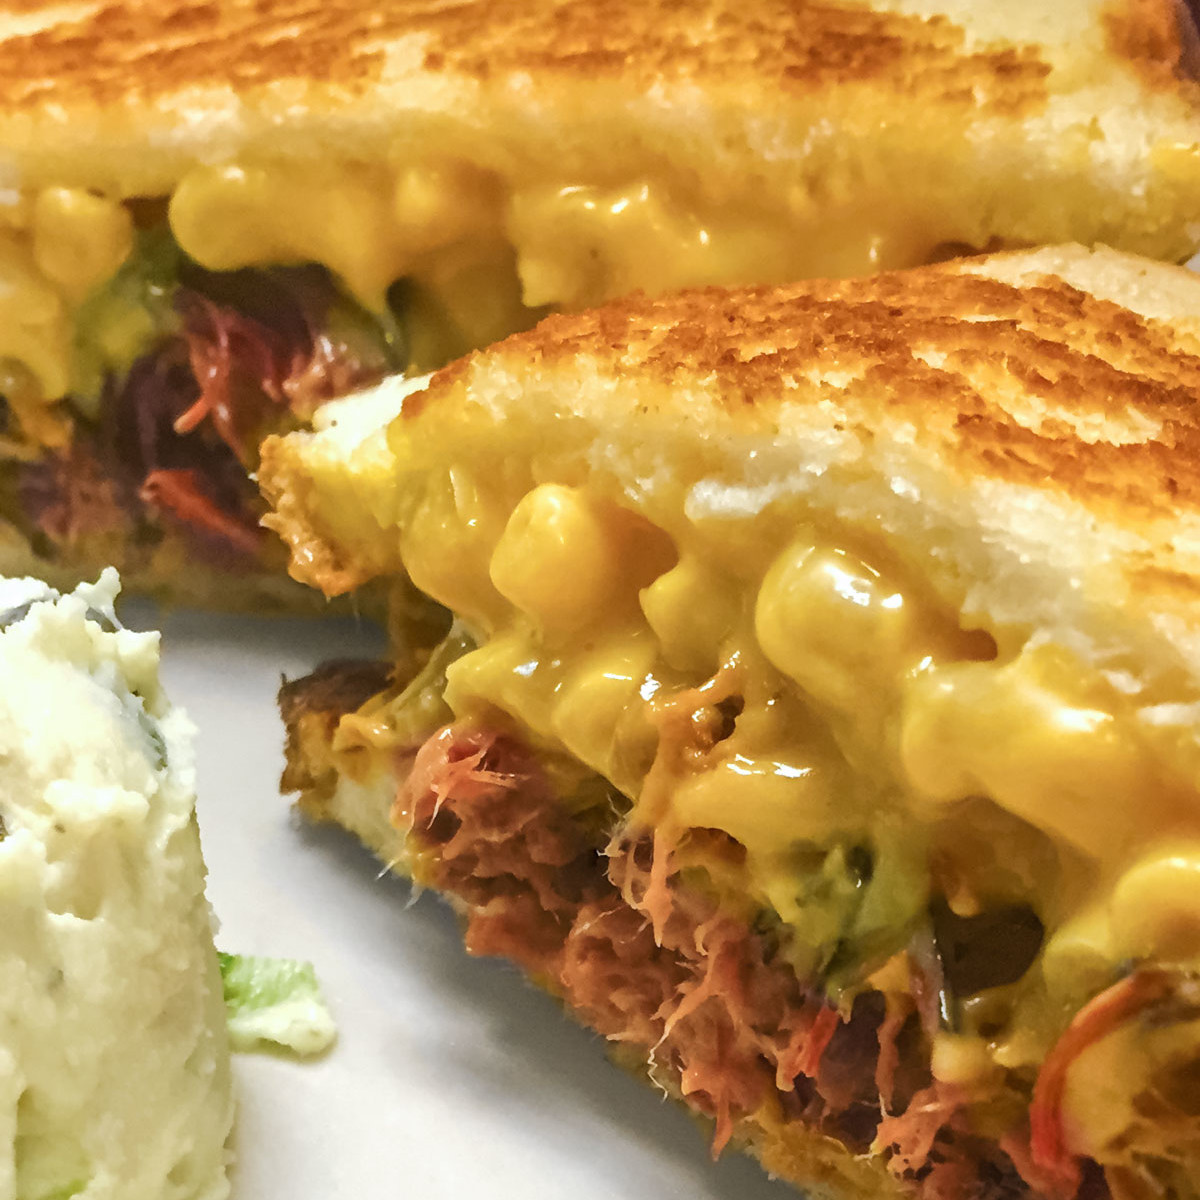 Hickory Tree grilled cheese